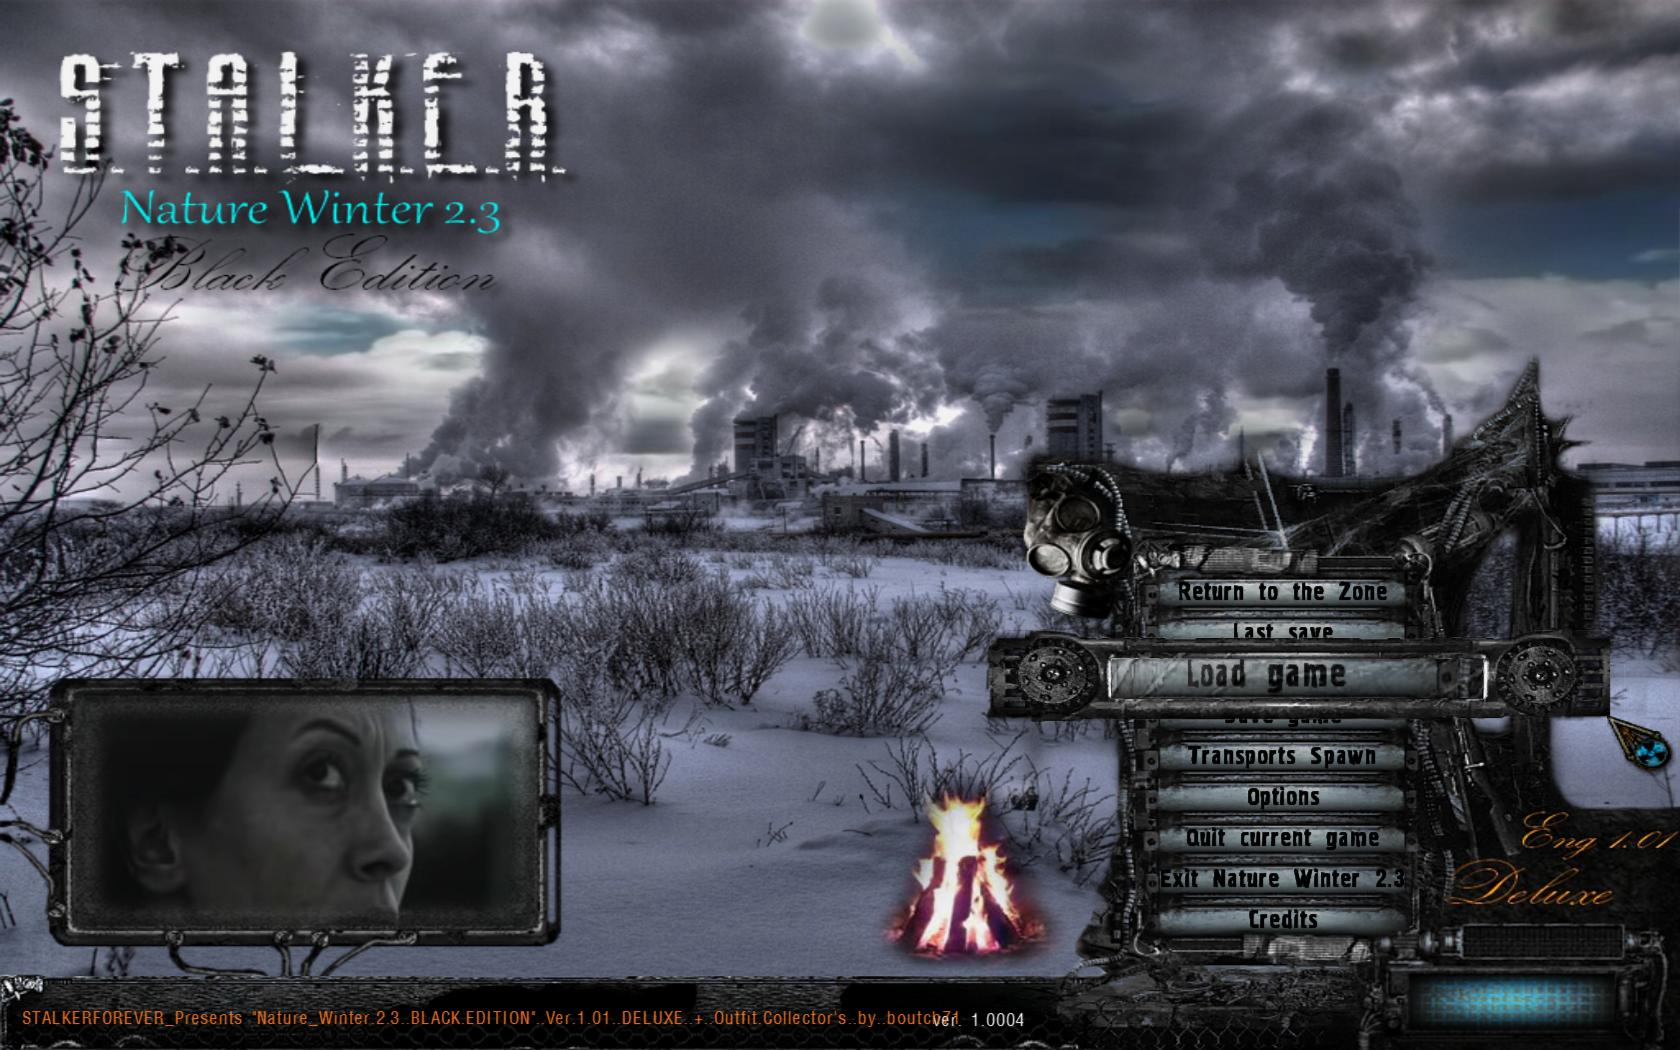 Nature Winter 2.3 Black Edition (eng 1.01 Deluxe) Images Gallery! Serie:1# Ss_bou20